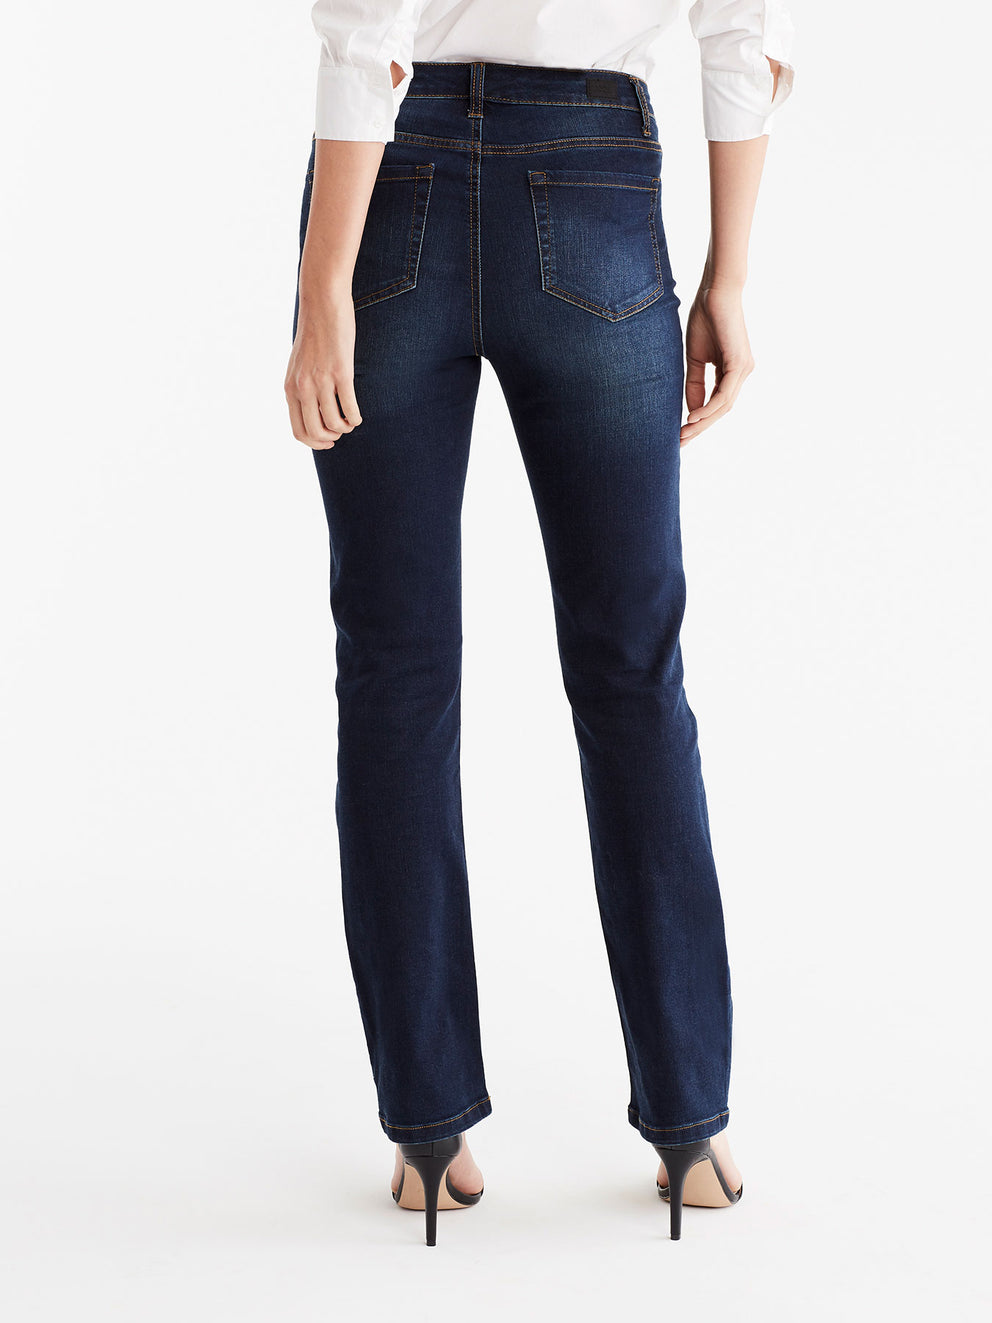 The Jones New York Lexington Indigo Wash Straight Leg Jeans, Plus Size in color Indigo Wash - Image Position 6